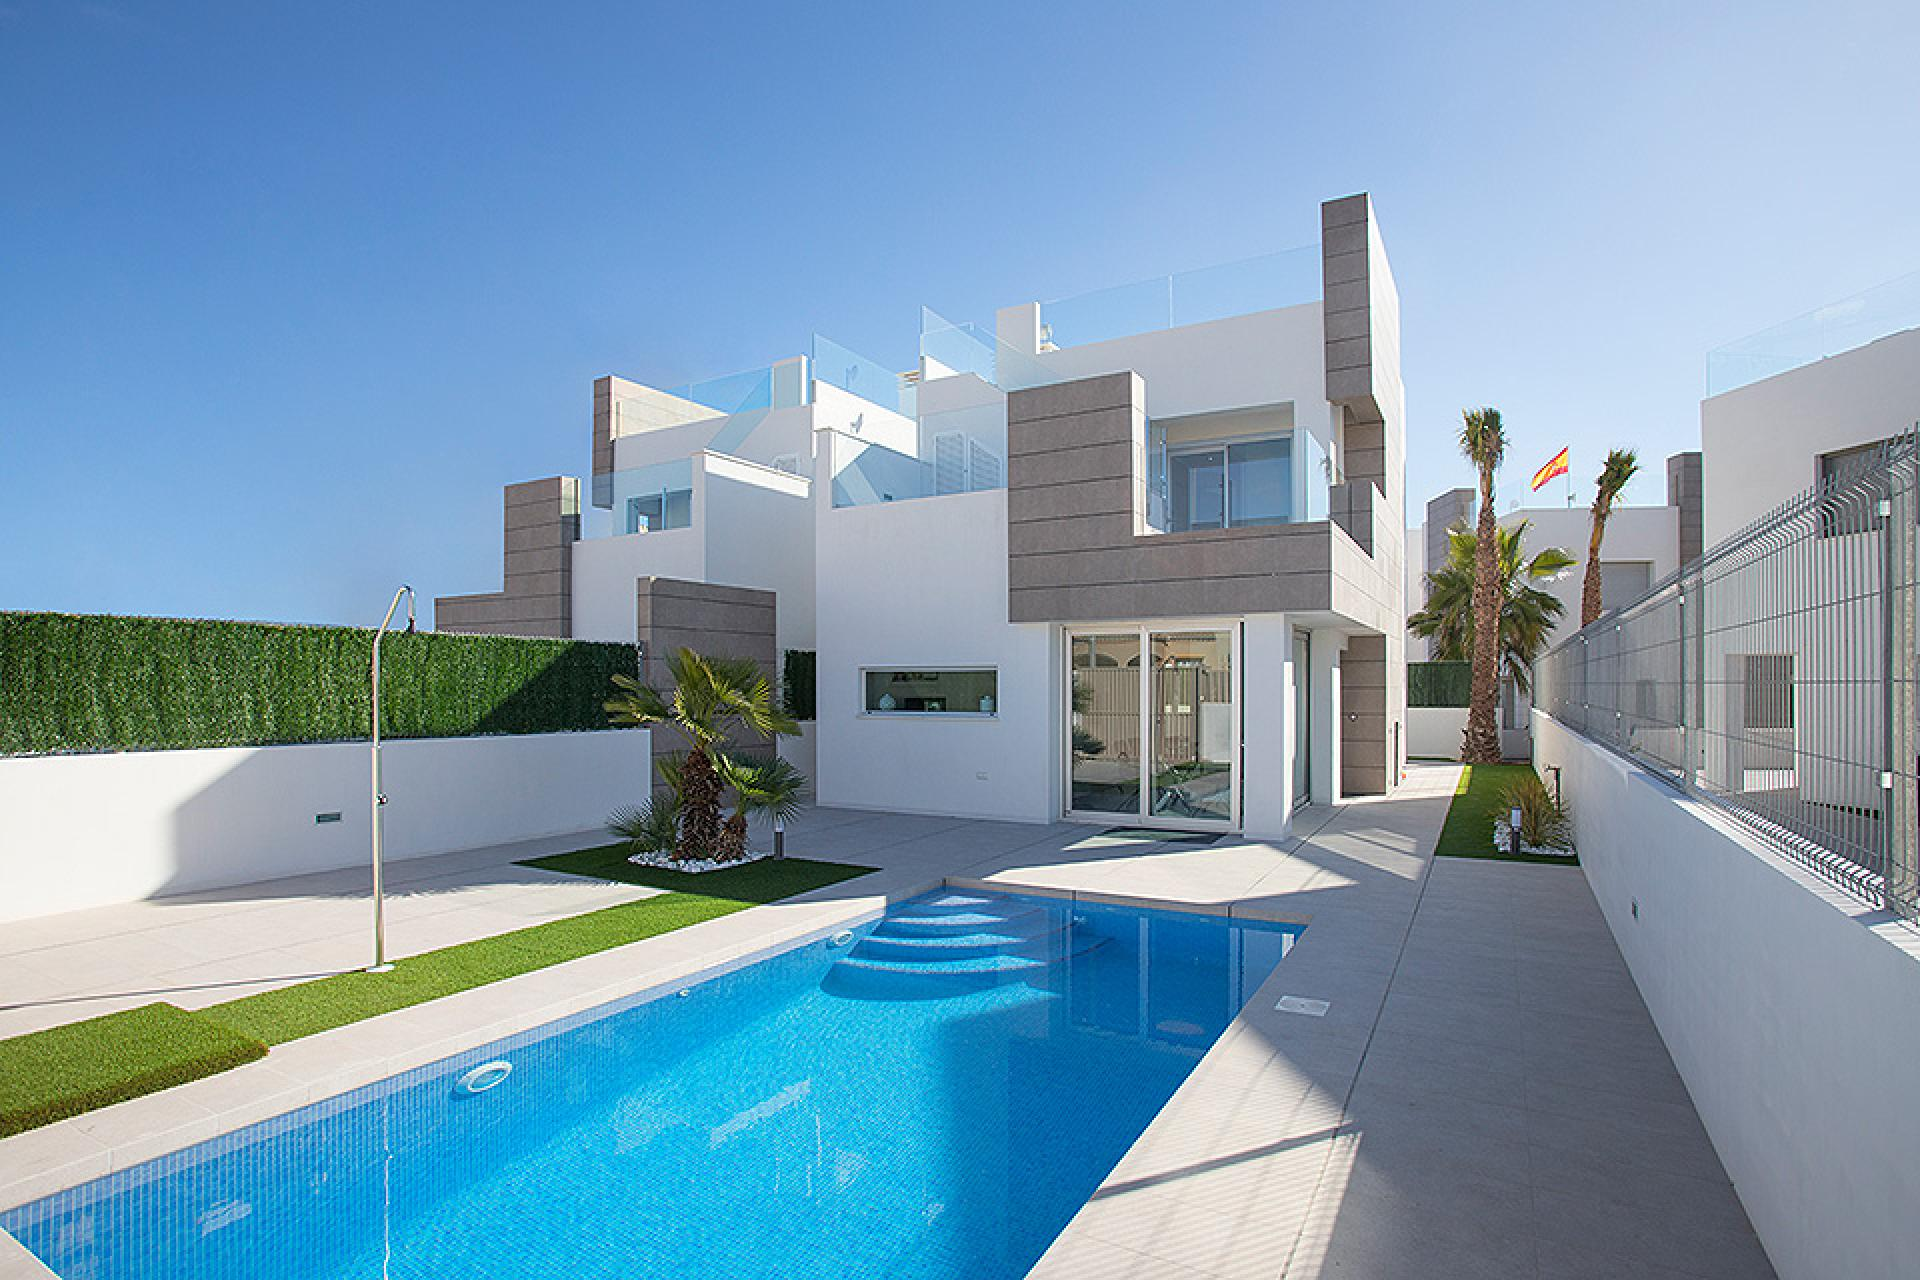 Villa in Guardamar del Segura (Alicante)